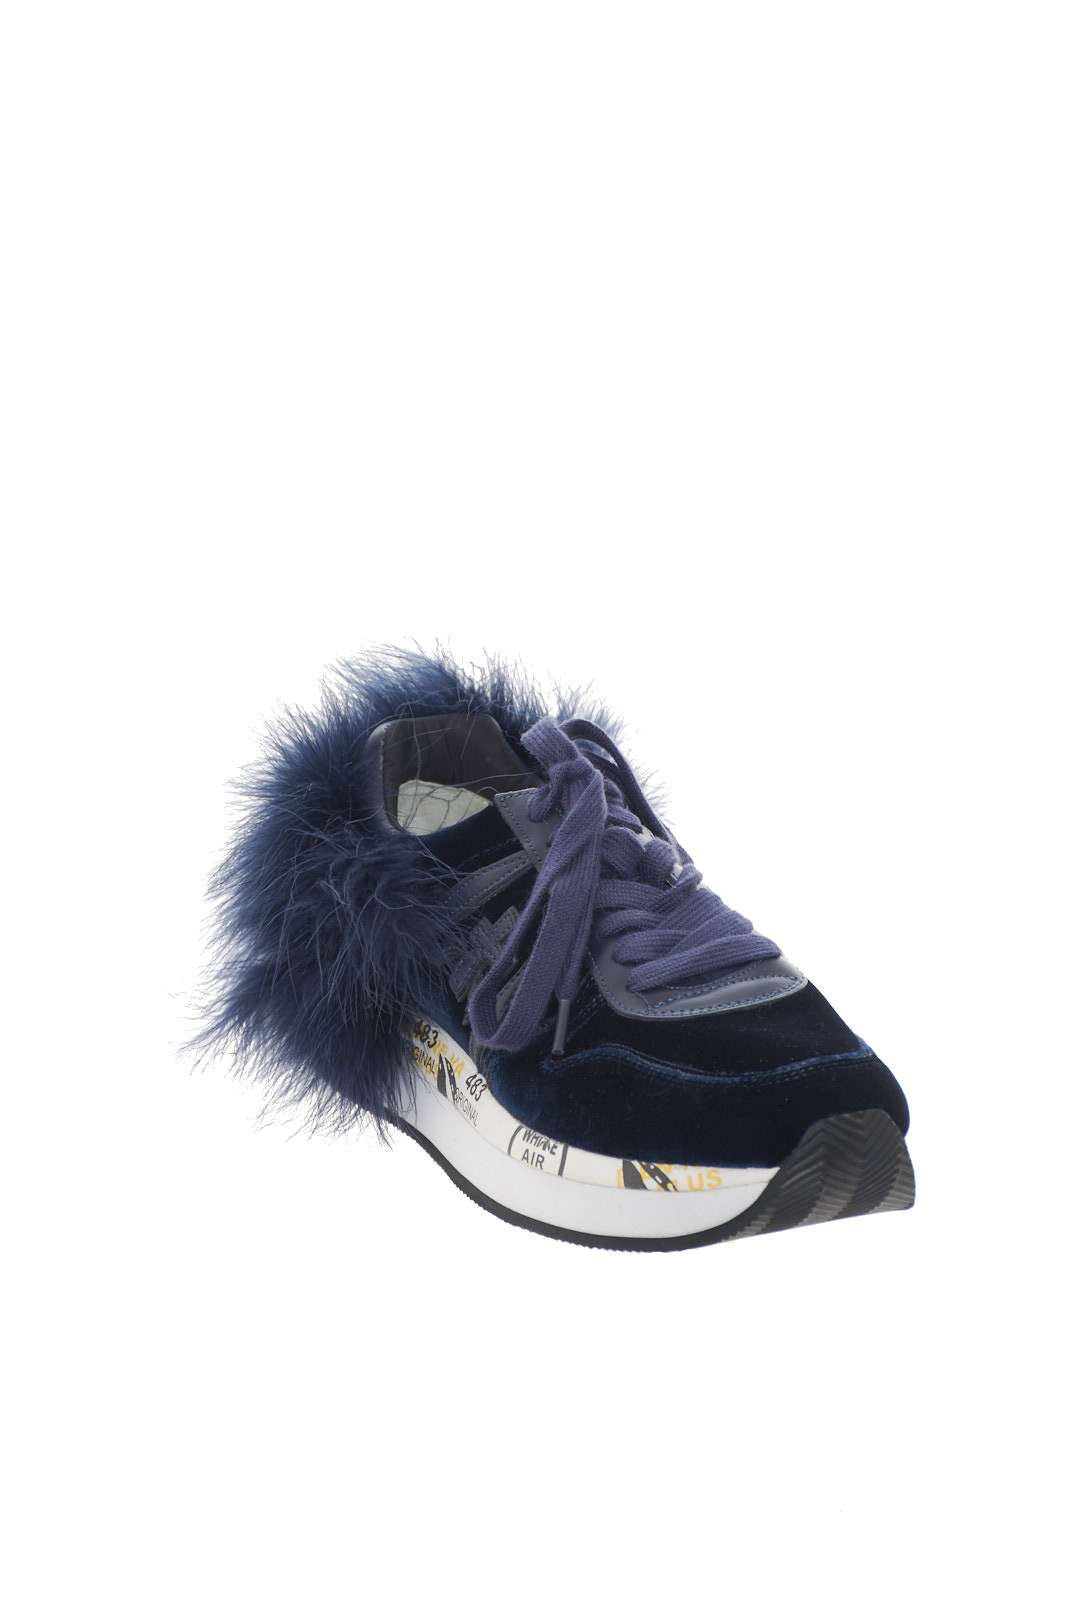 https://www.parmax.com/media/catalog/product/a/i/AI-outlet_parmax-sneakers-donna-Premiata-HOLLY-B.jpg